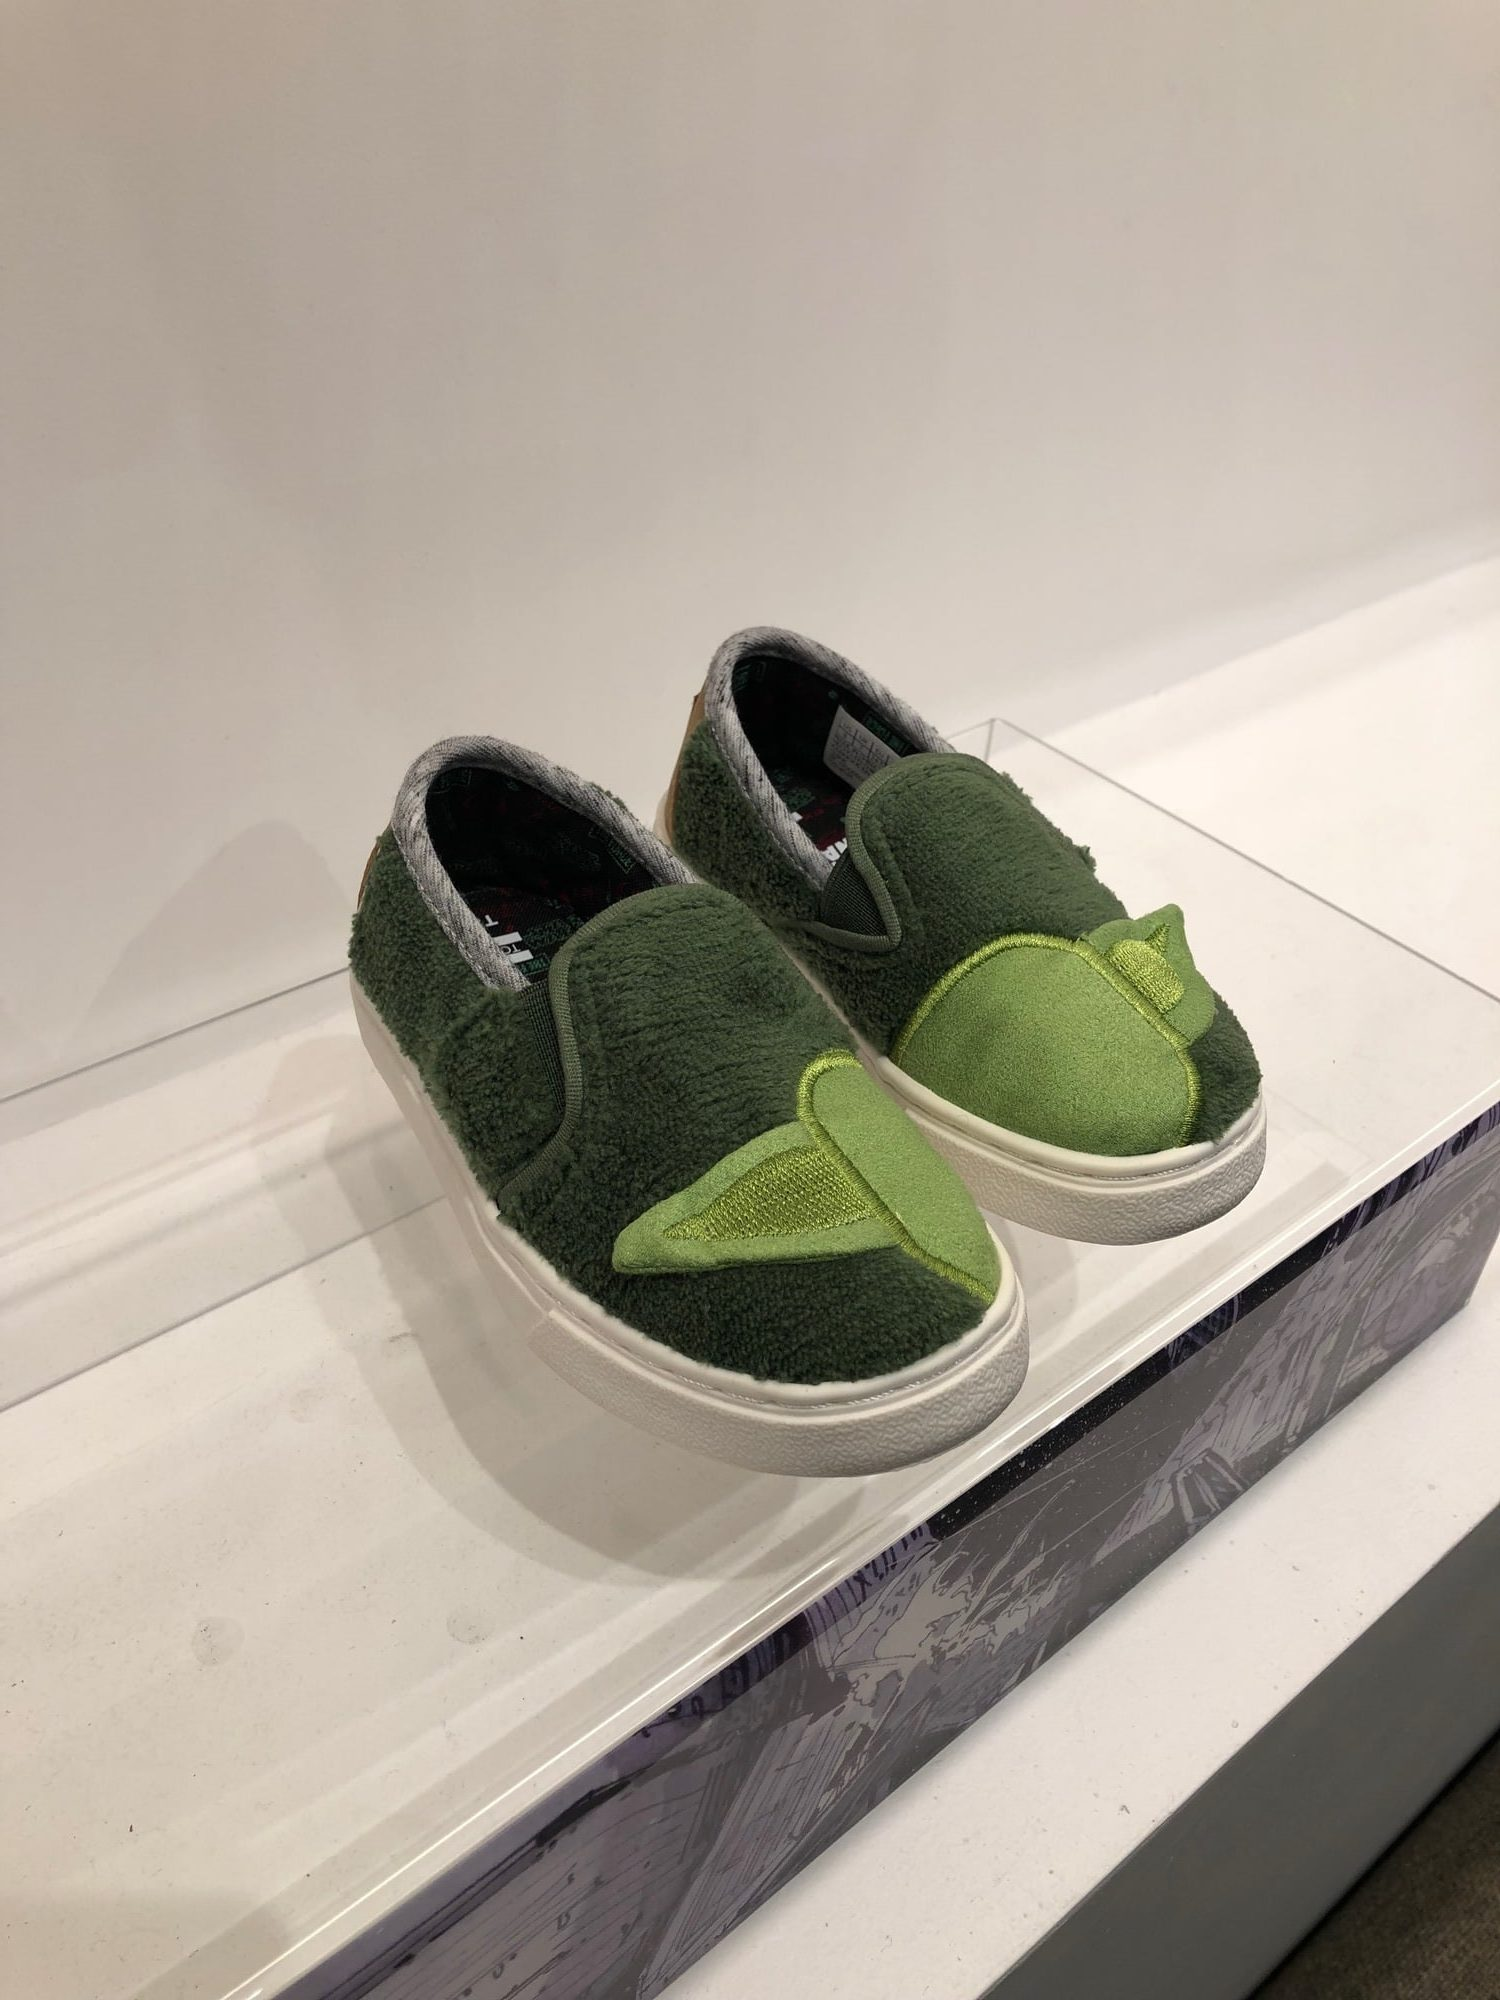 TOMS x Star Wars yoda for kids slippers sneakers shoes